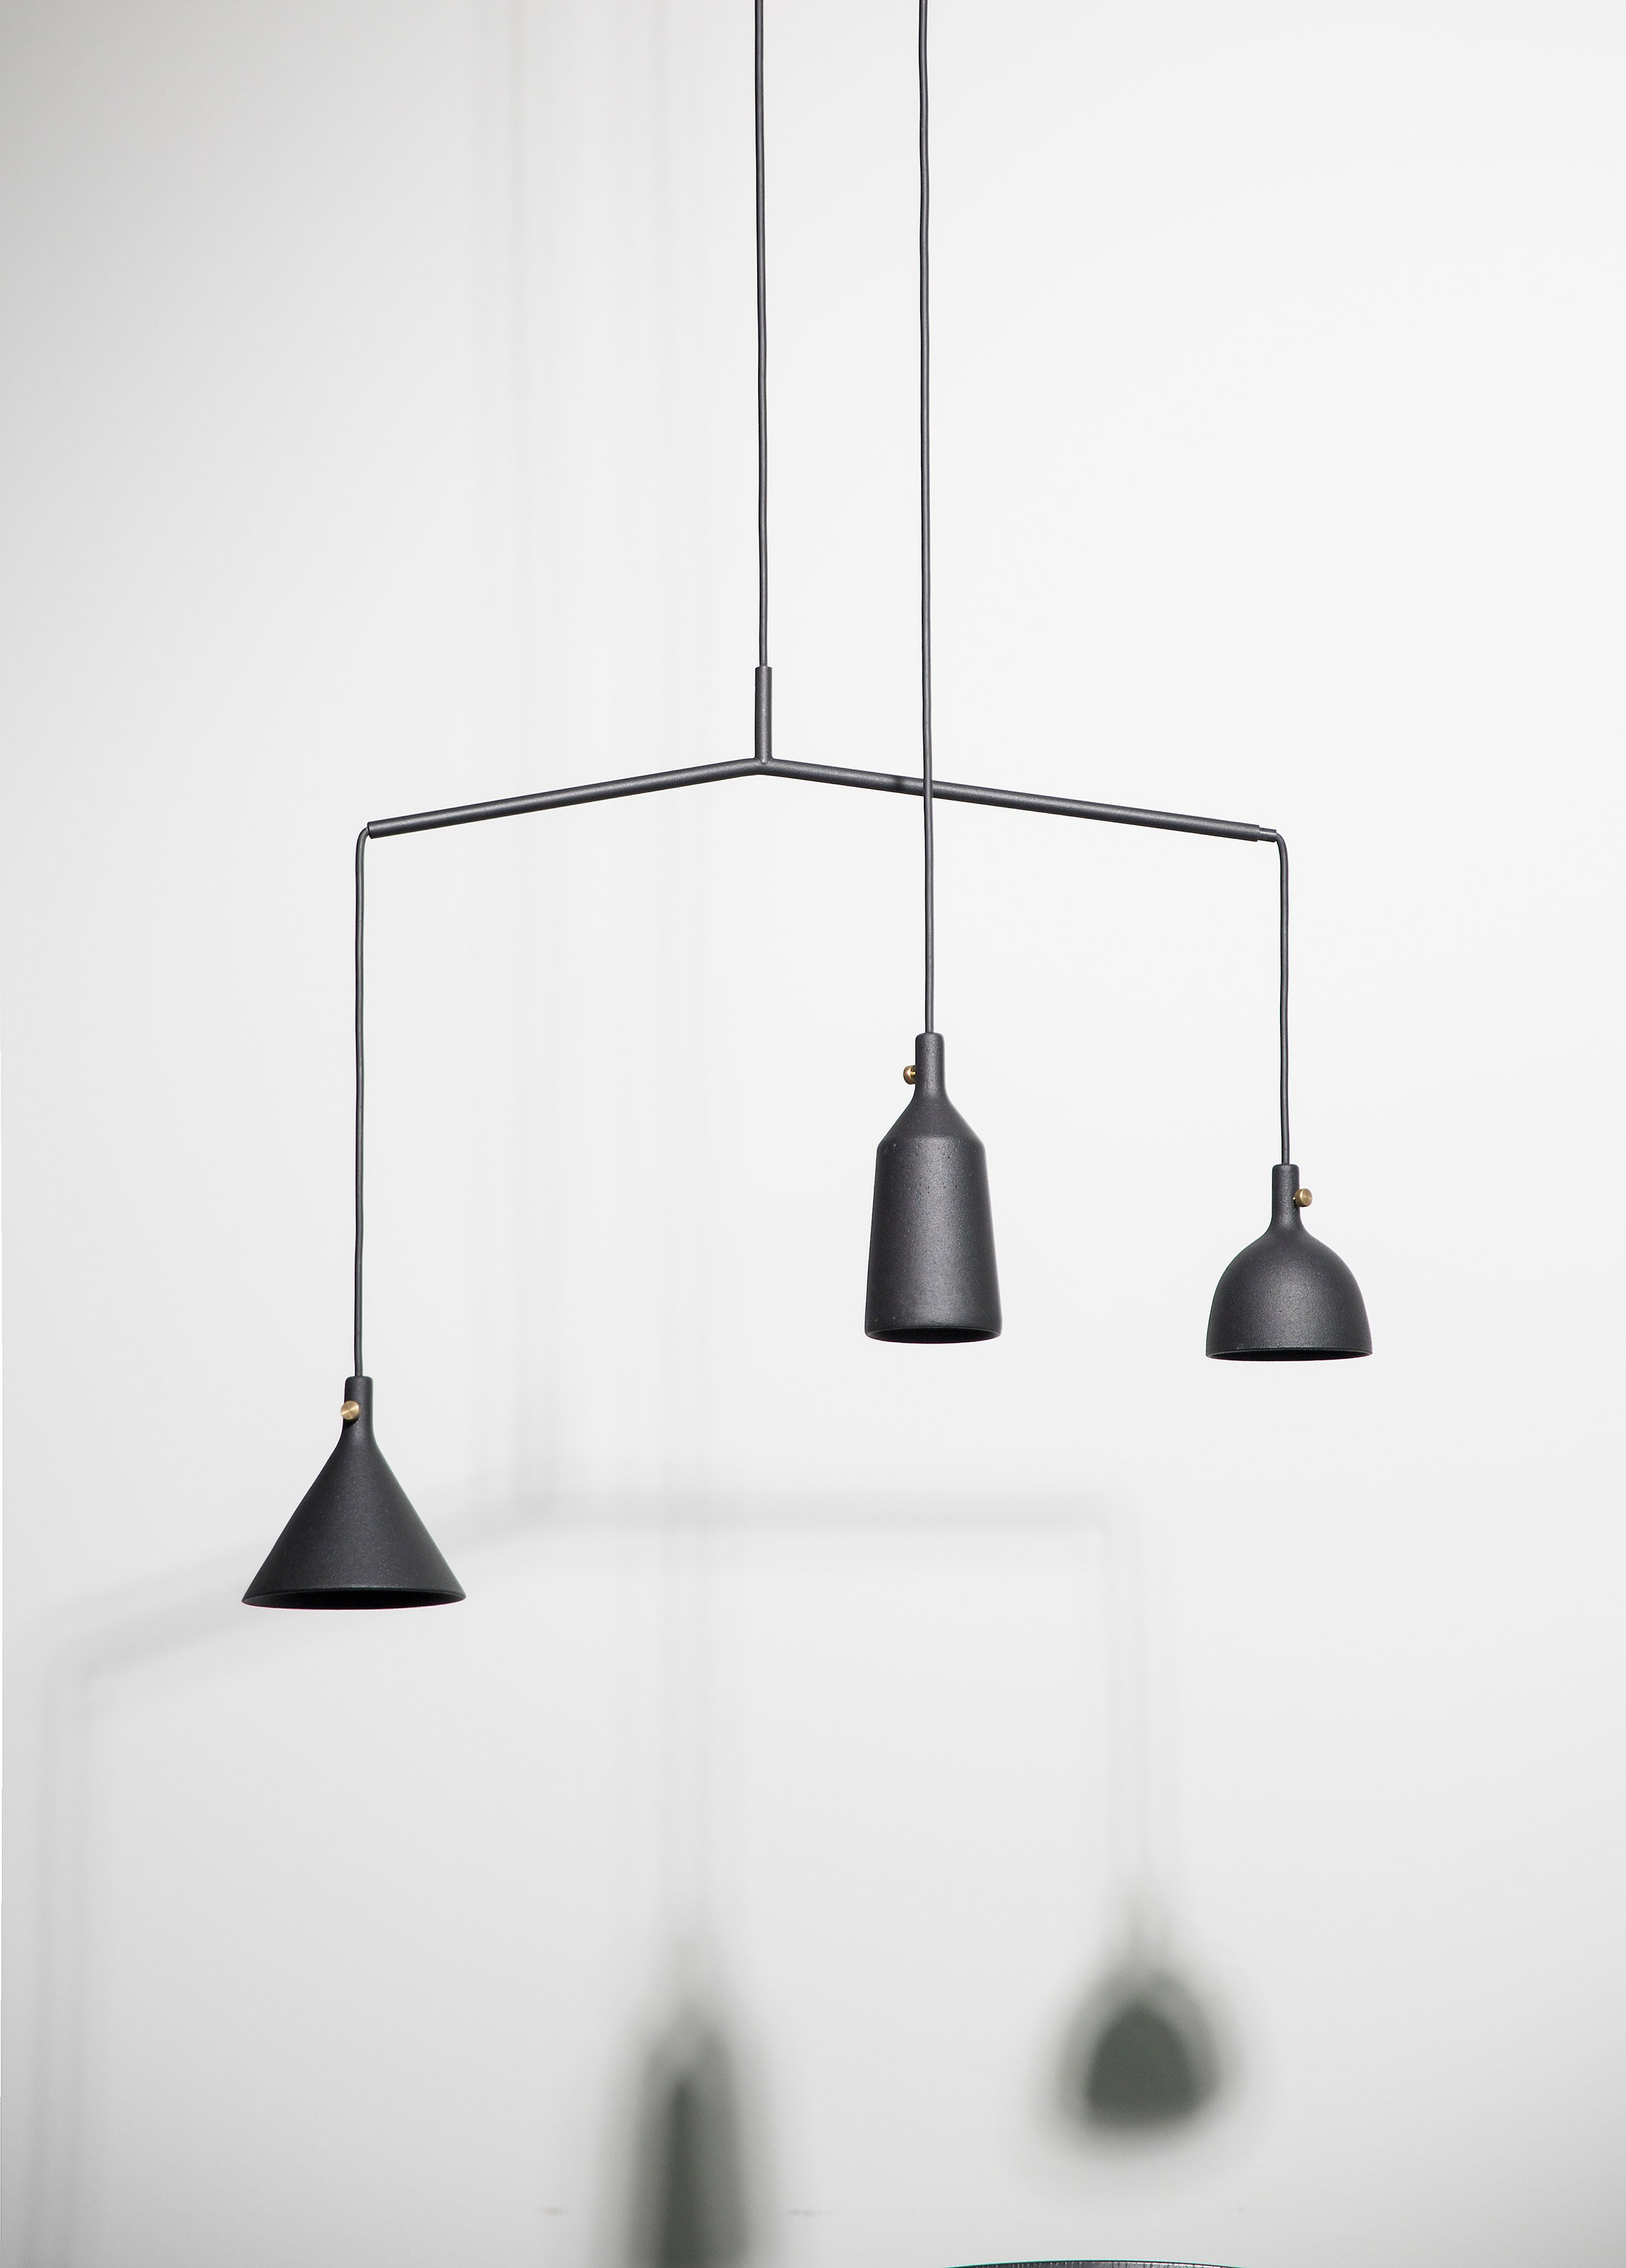 This lamp has an eye catchy asymmetrical design and comes in timeless black